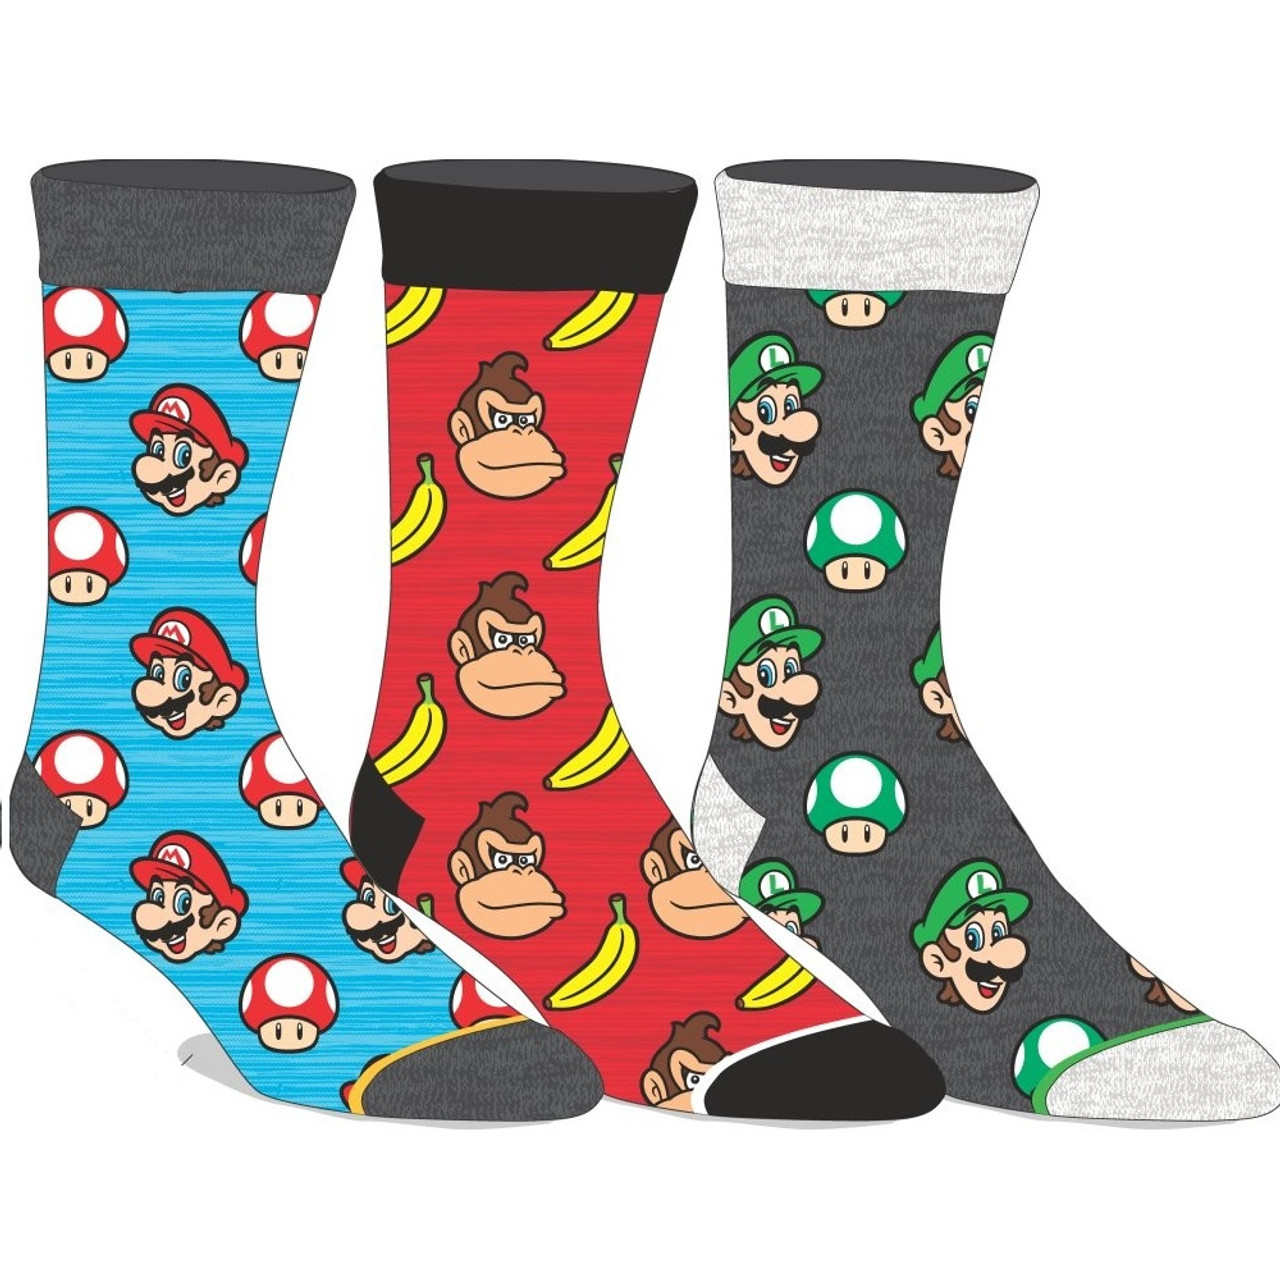 3 Pairs of Super Mario Bros Crew Socks by Bioworld